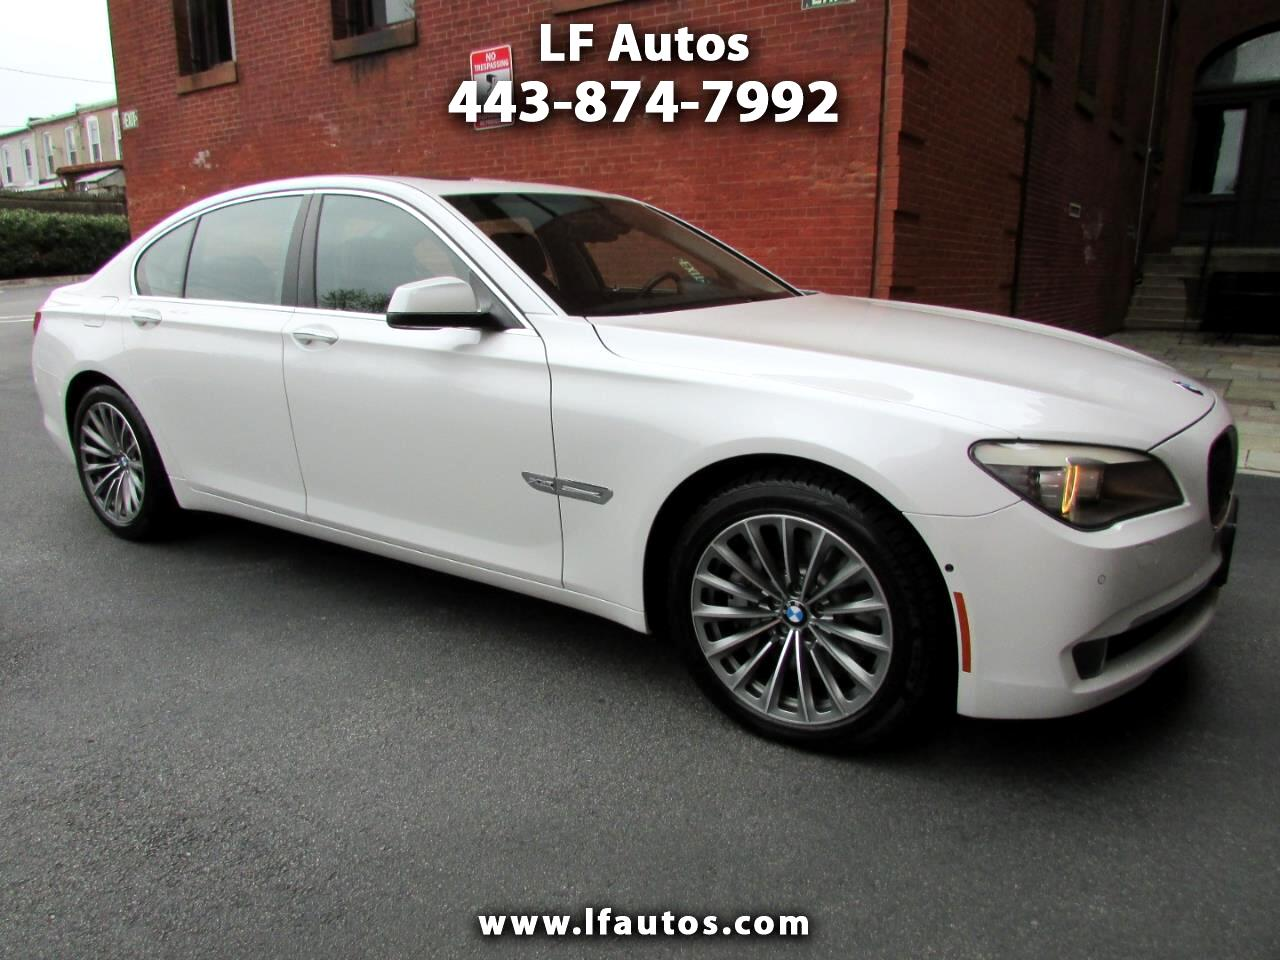 2012 BMW 7 Series 4dr Sdn 750i xDrive AWD